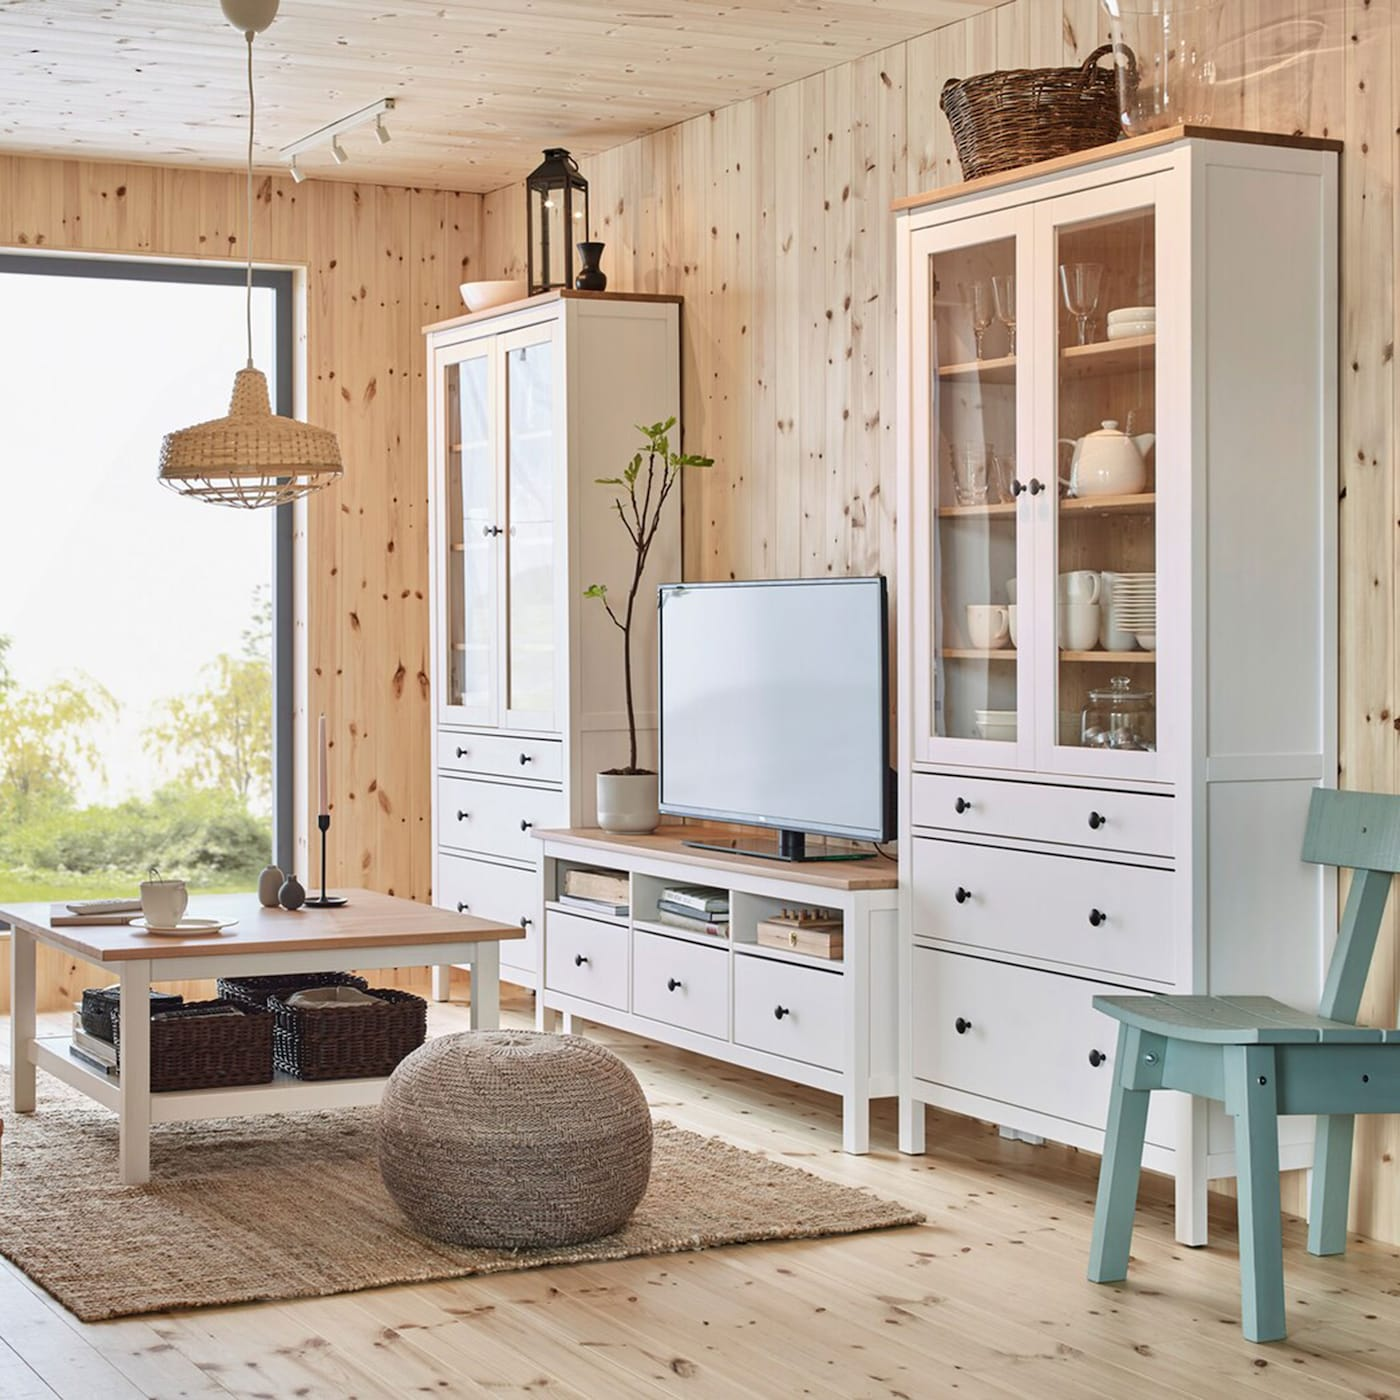 HEMNES pine wood furniture series including tall cabinets with glass doors, coffee table and TV bench crafted from fresh, smooth pinewood.